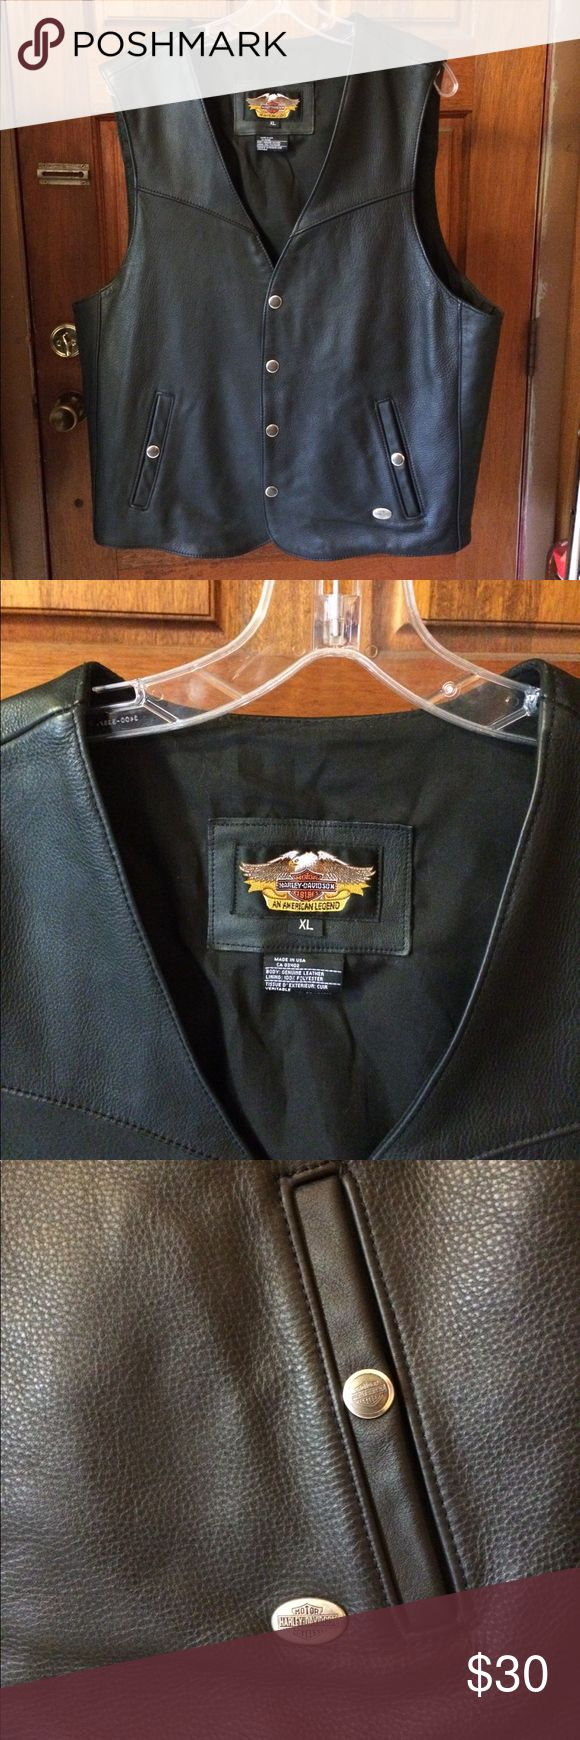 Men's Harley-Davidson Vest XL This genuine leather Harley-Davidson Vest is in Excellent condition. It has 4 snaps down the front. 2 outside pockets and an inside pocket. Size is XL, measurement in inches: Shoulder to shoulder: 16.75 Neck to Hem(on the back of vest): 24 Harley-Davidson Jackets & Coats Vests